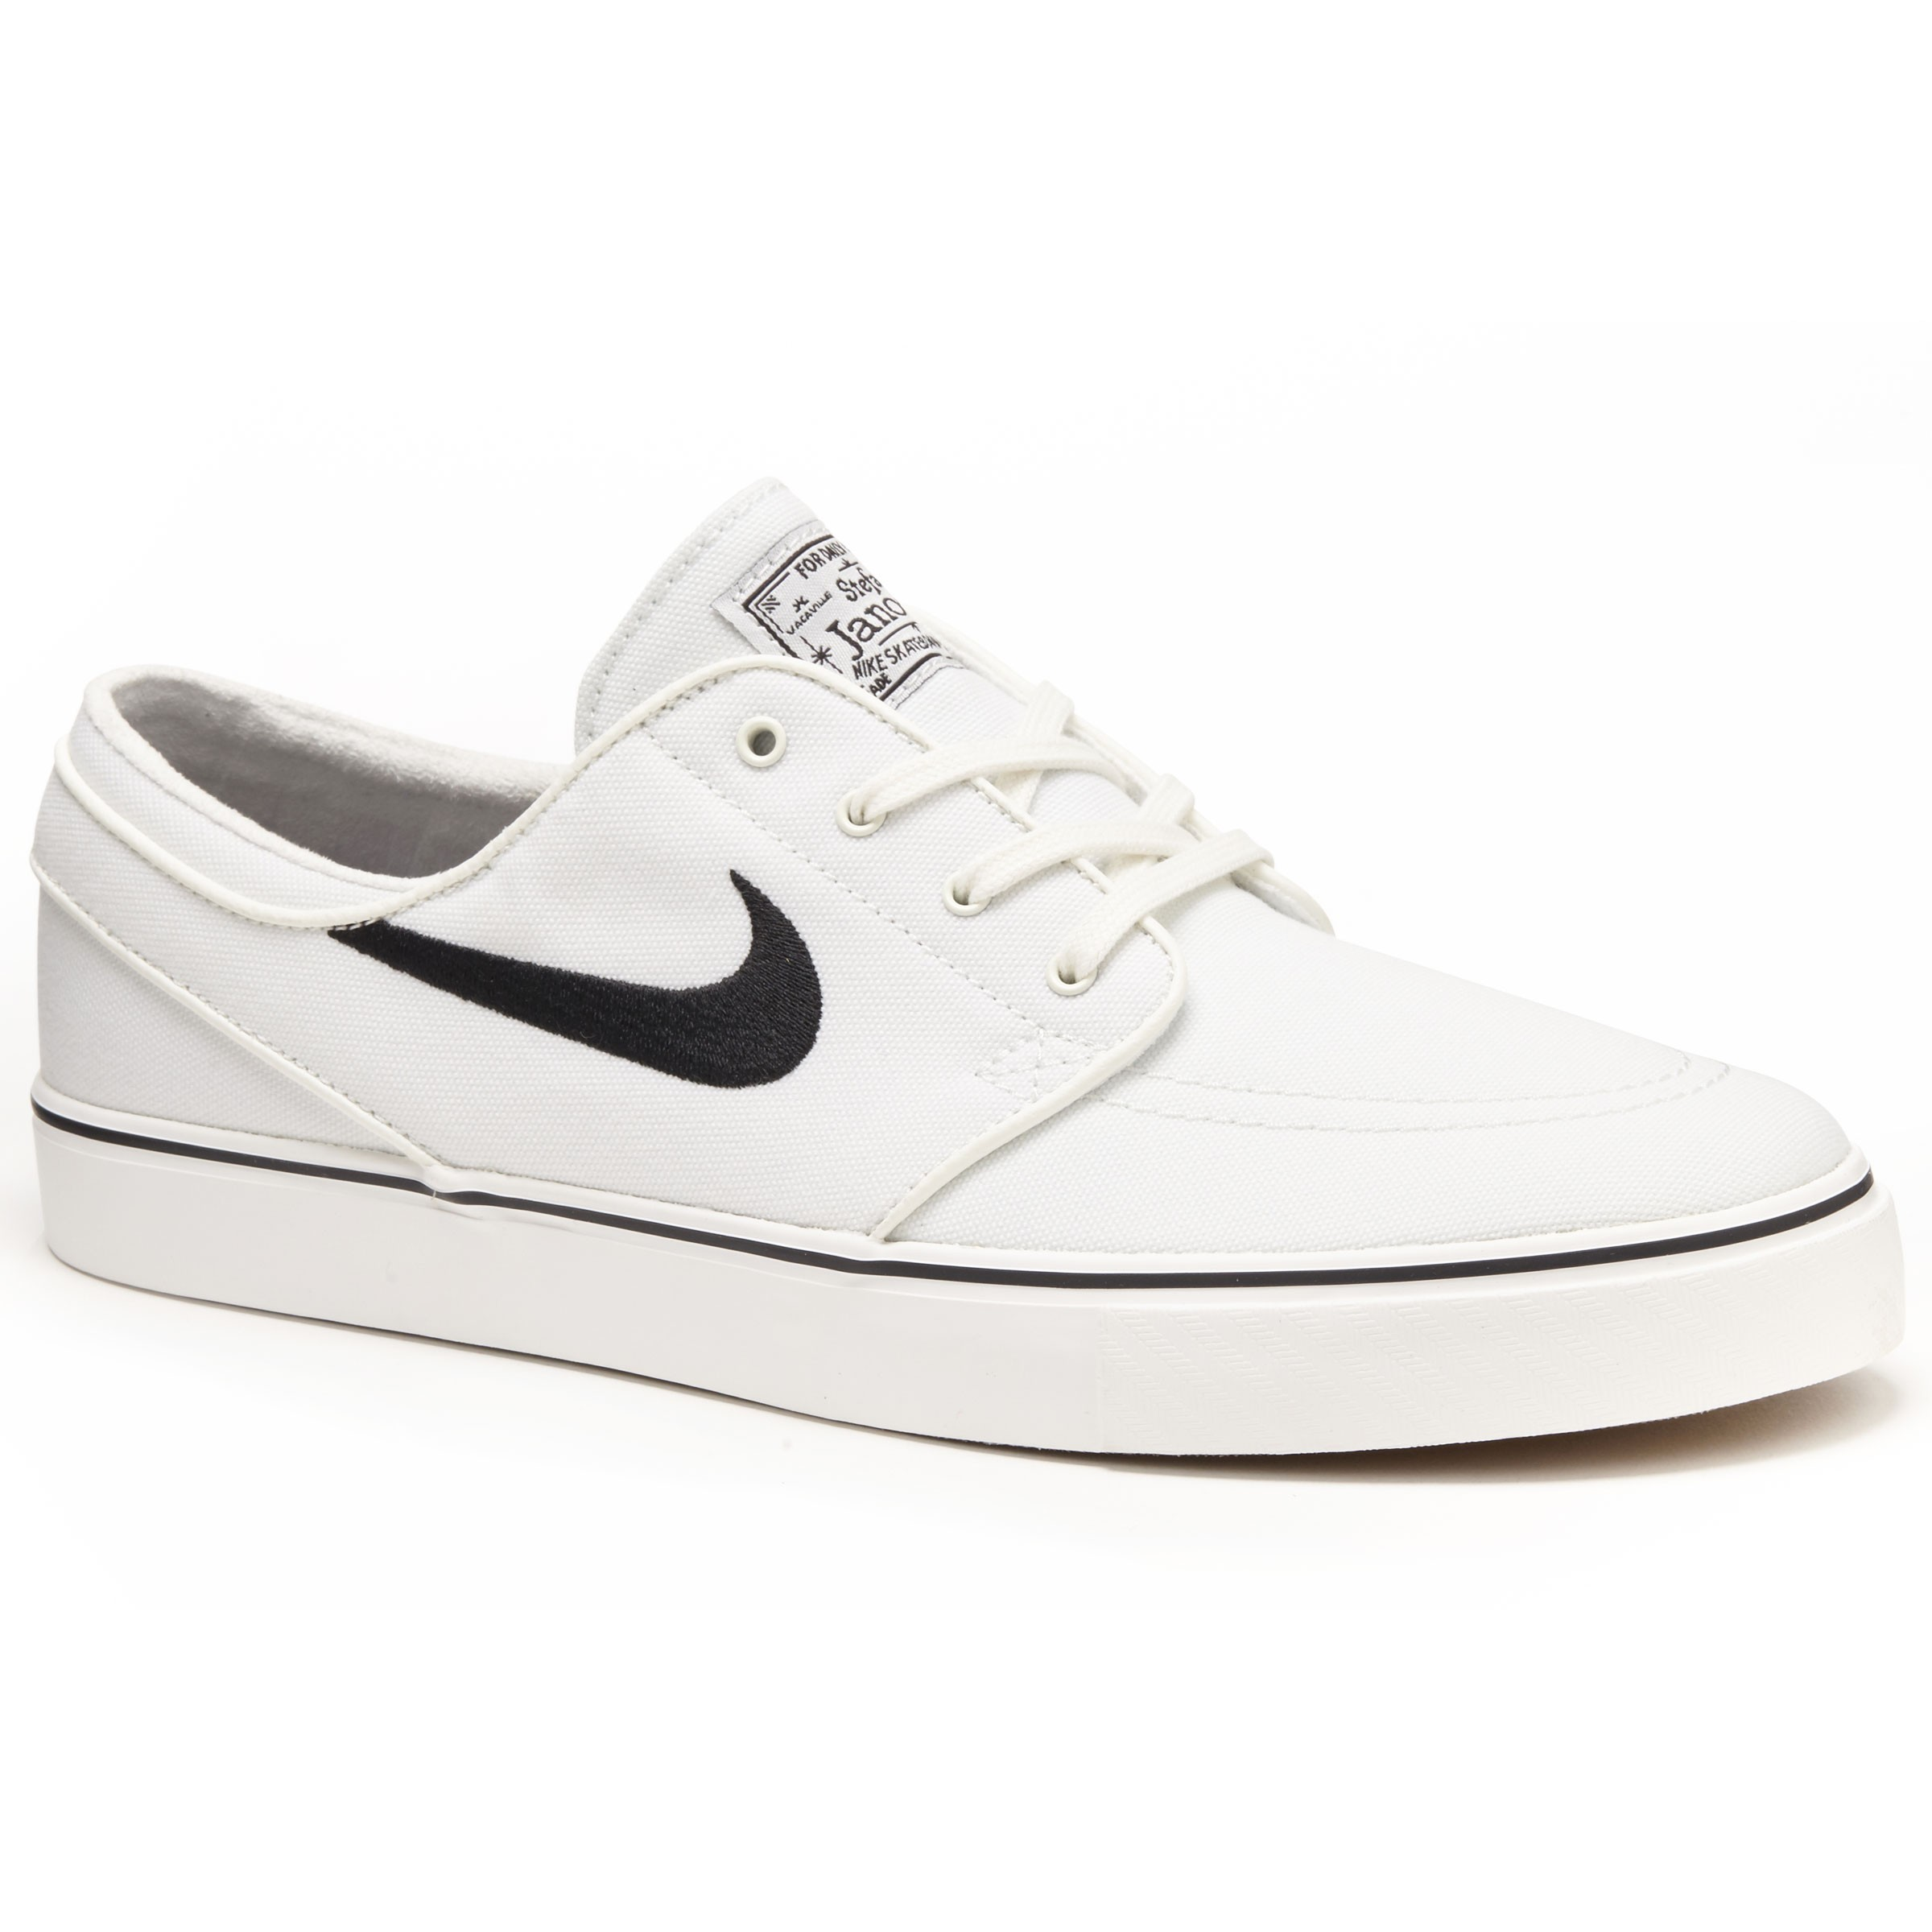 4609d7dea236 Nike Zoom Stefan Janoski Canvas Shoes